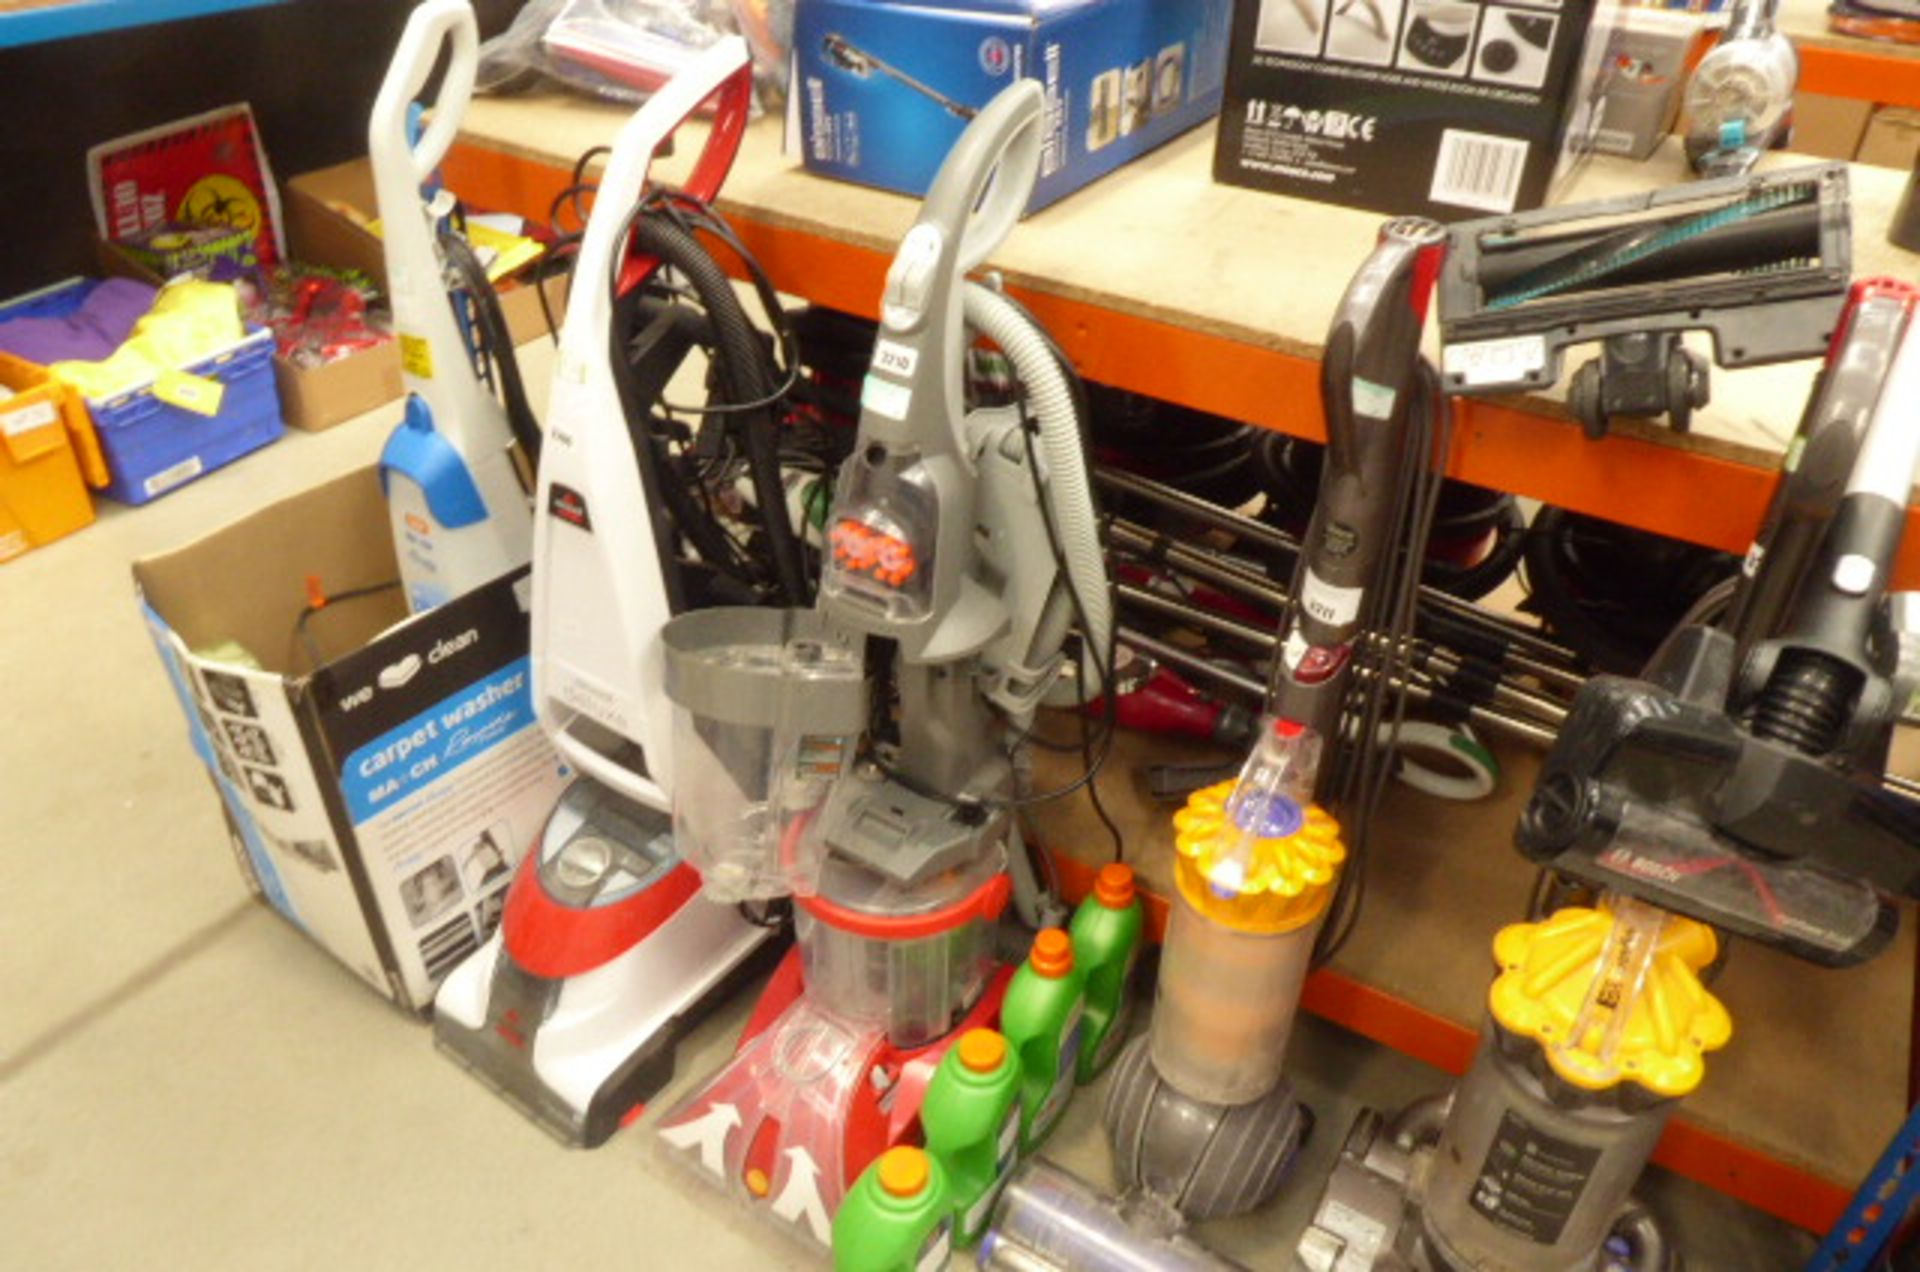 Lot 3210 - Upright Vax washer with cleaning solution